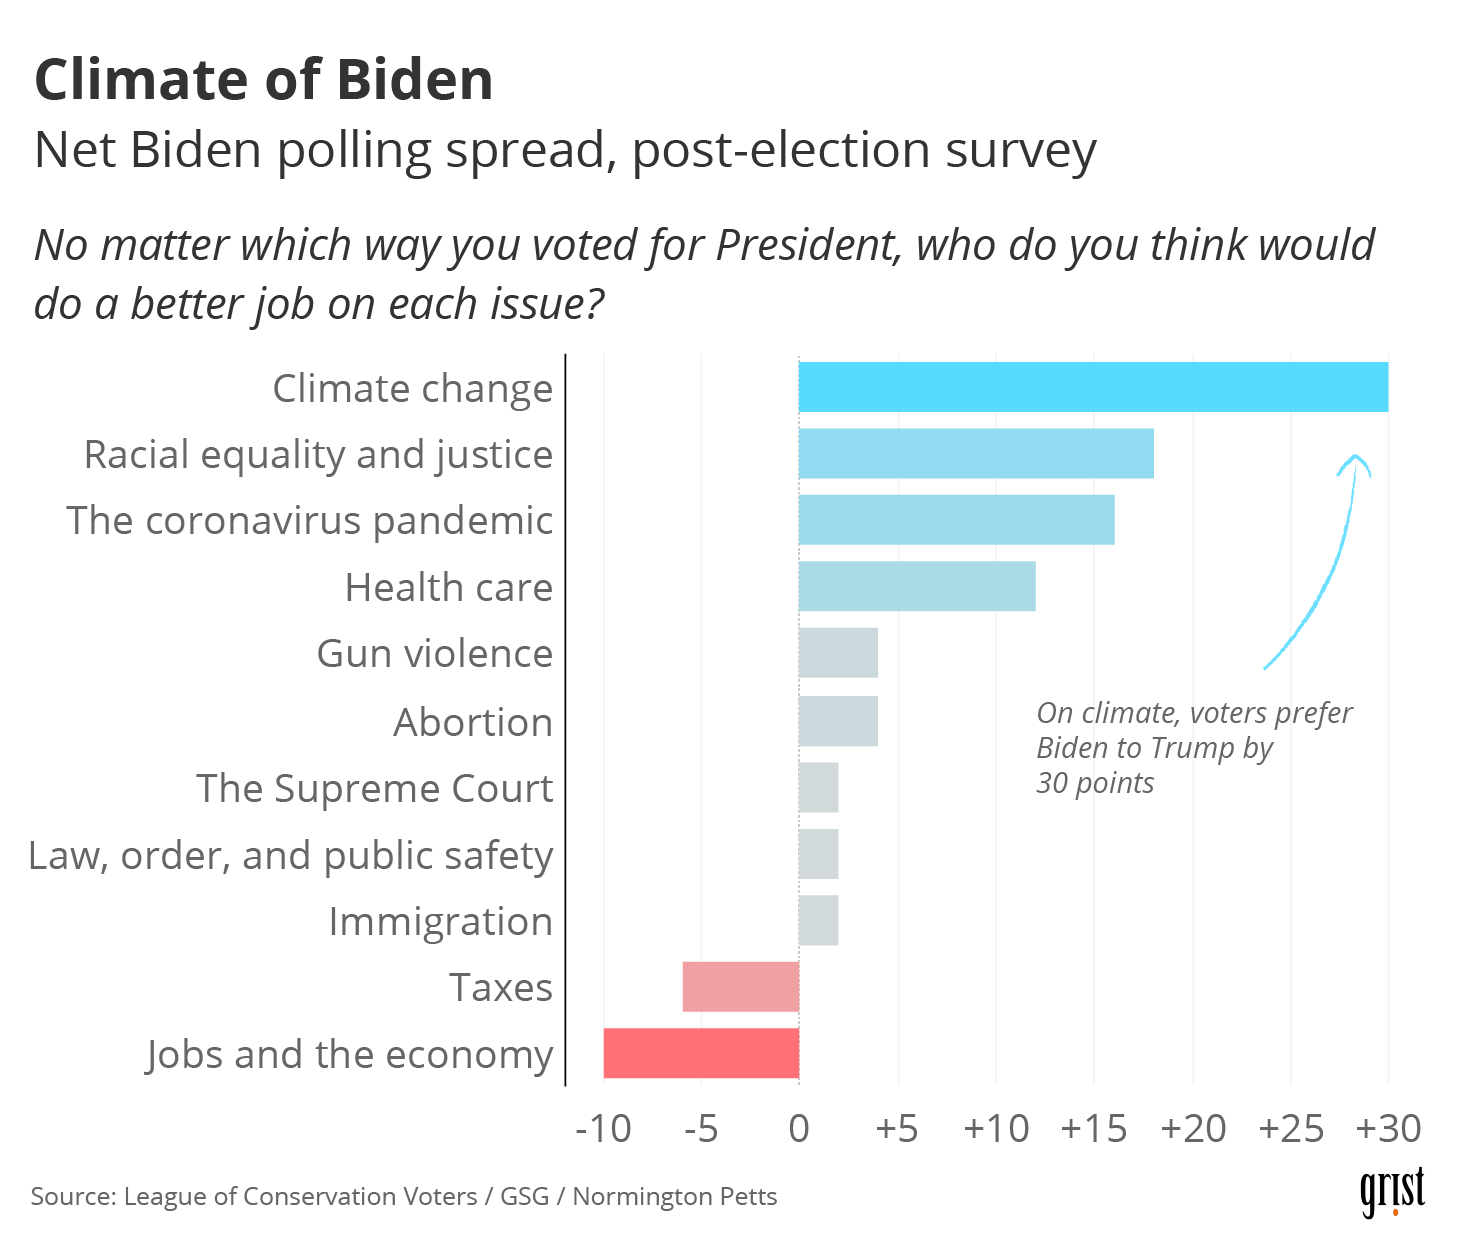 A bar chart showing results of a post-election survey on trust in the respective U.S. presidential candidates. Voters preferred Biden over Trump on climate change by 30 points.